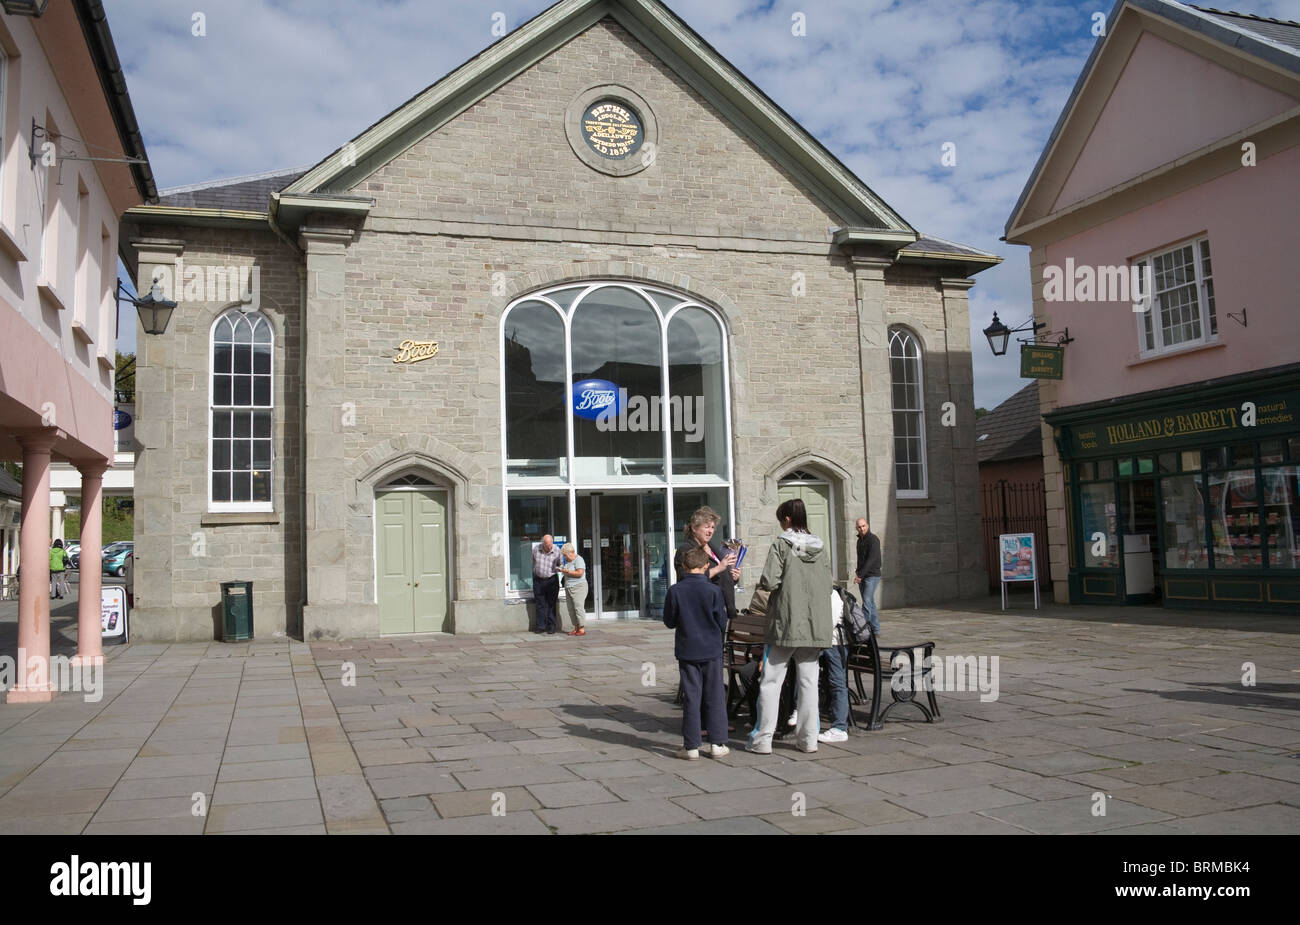 Brecon Powys Wales UK Boots the Chemist housed in an old chapel building in Bethel Square - Stock Image